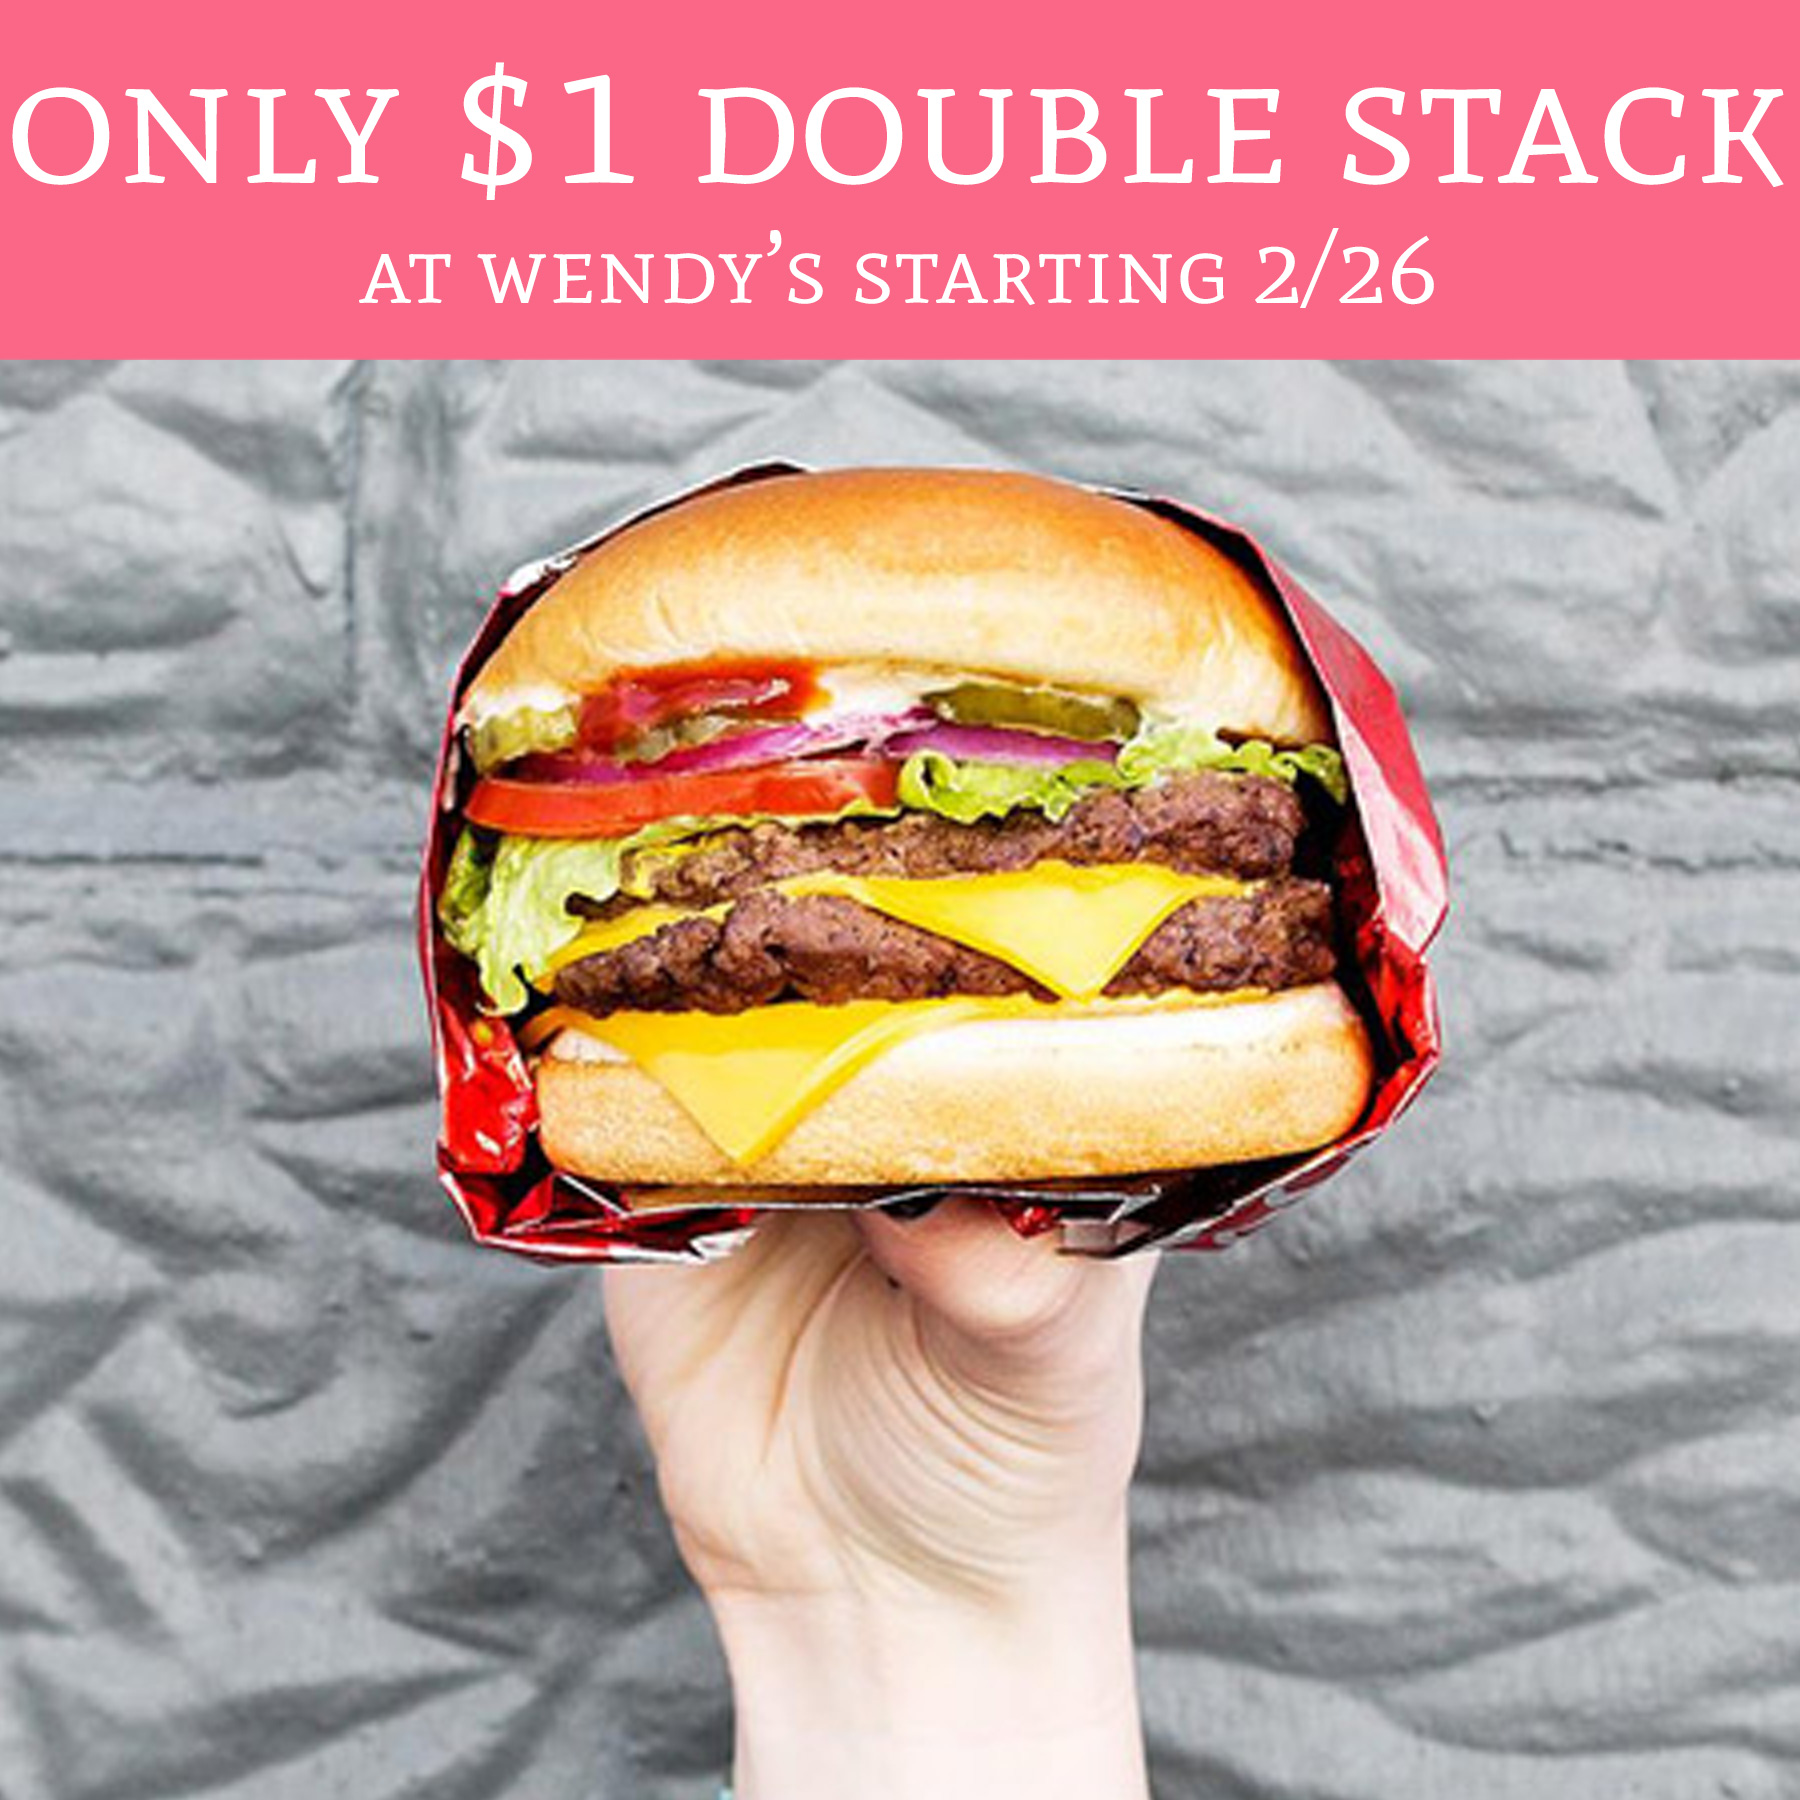 Only $1 Double Stack At Wendy's!